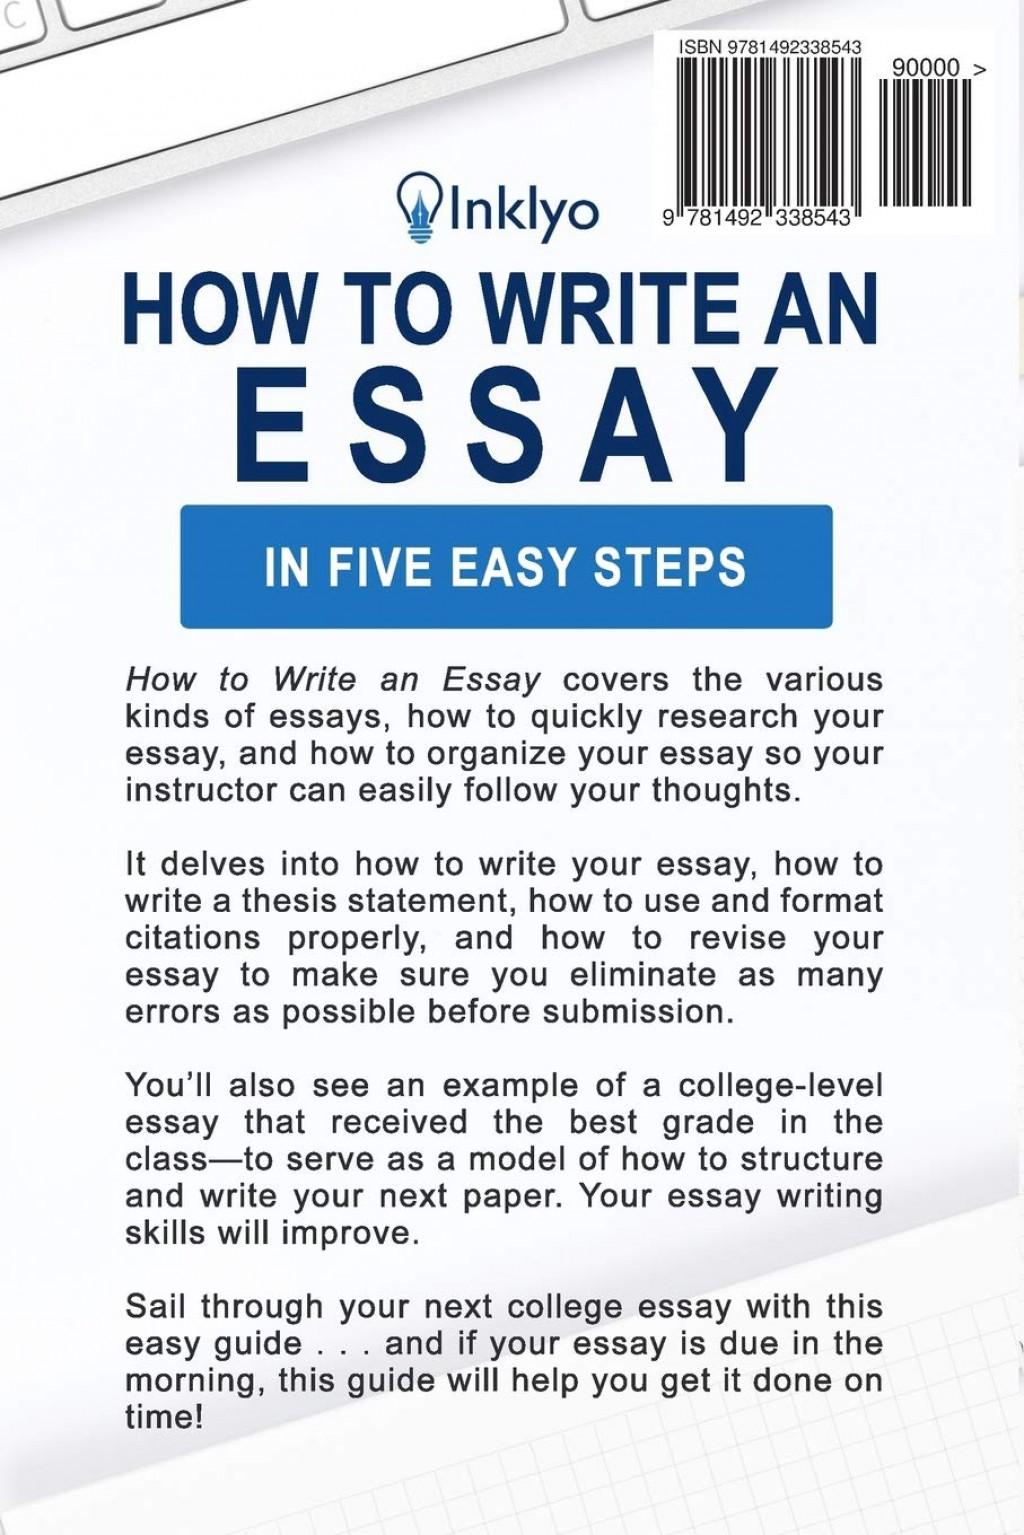 004 Essay Example Write An Unbelievable How To Fast In Exam 6 Hours Large